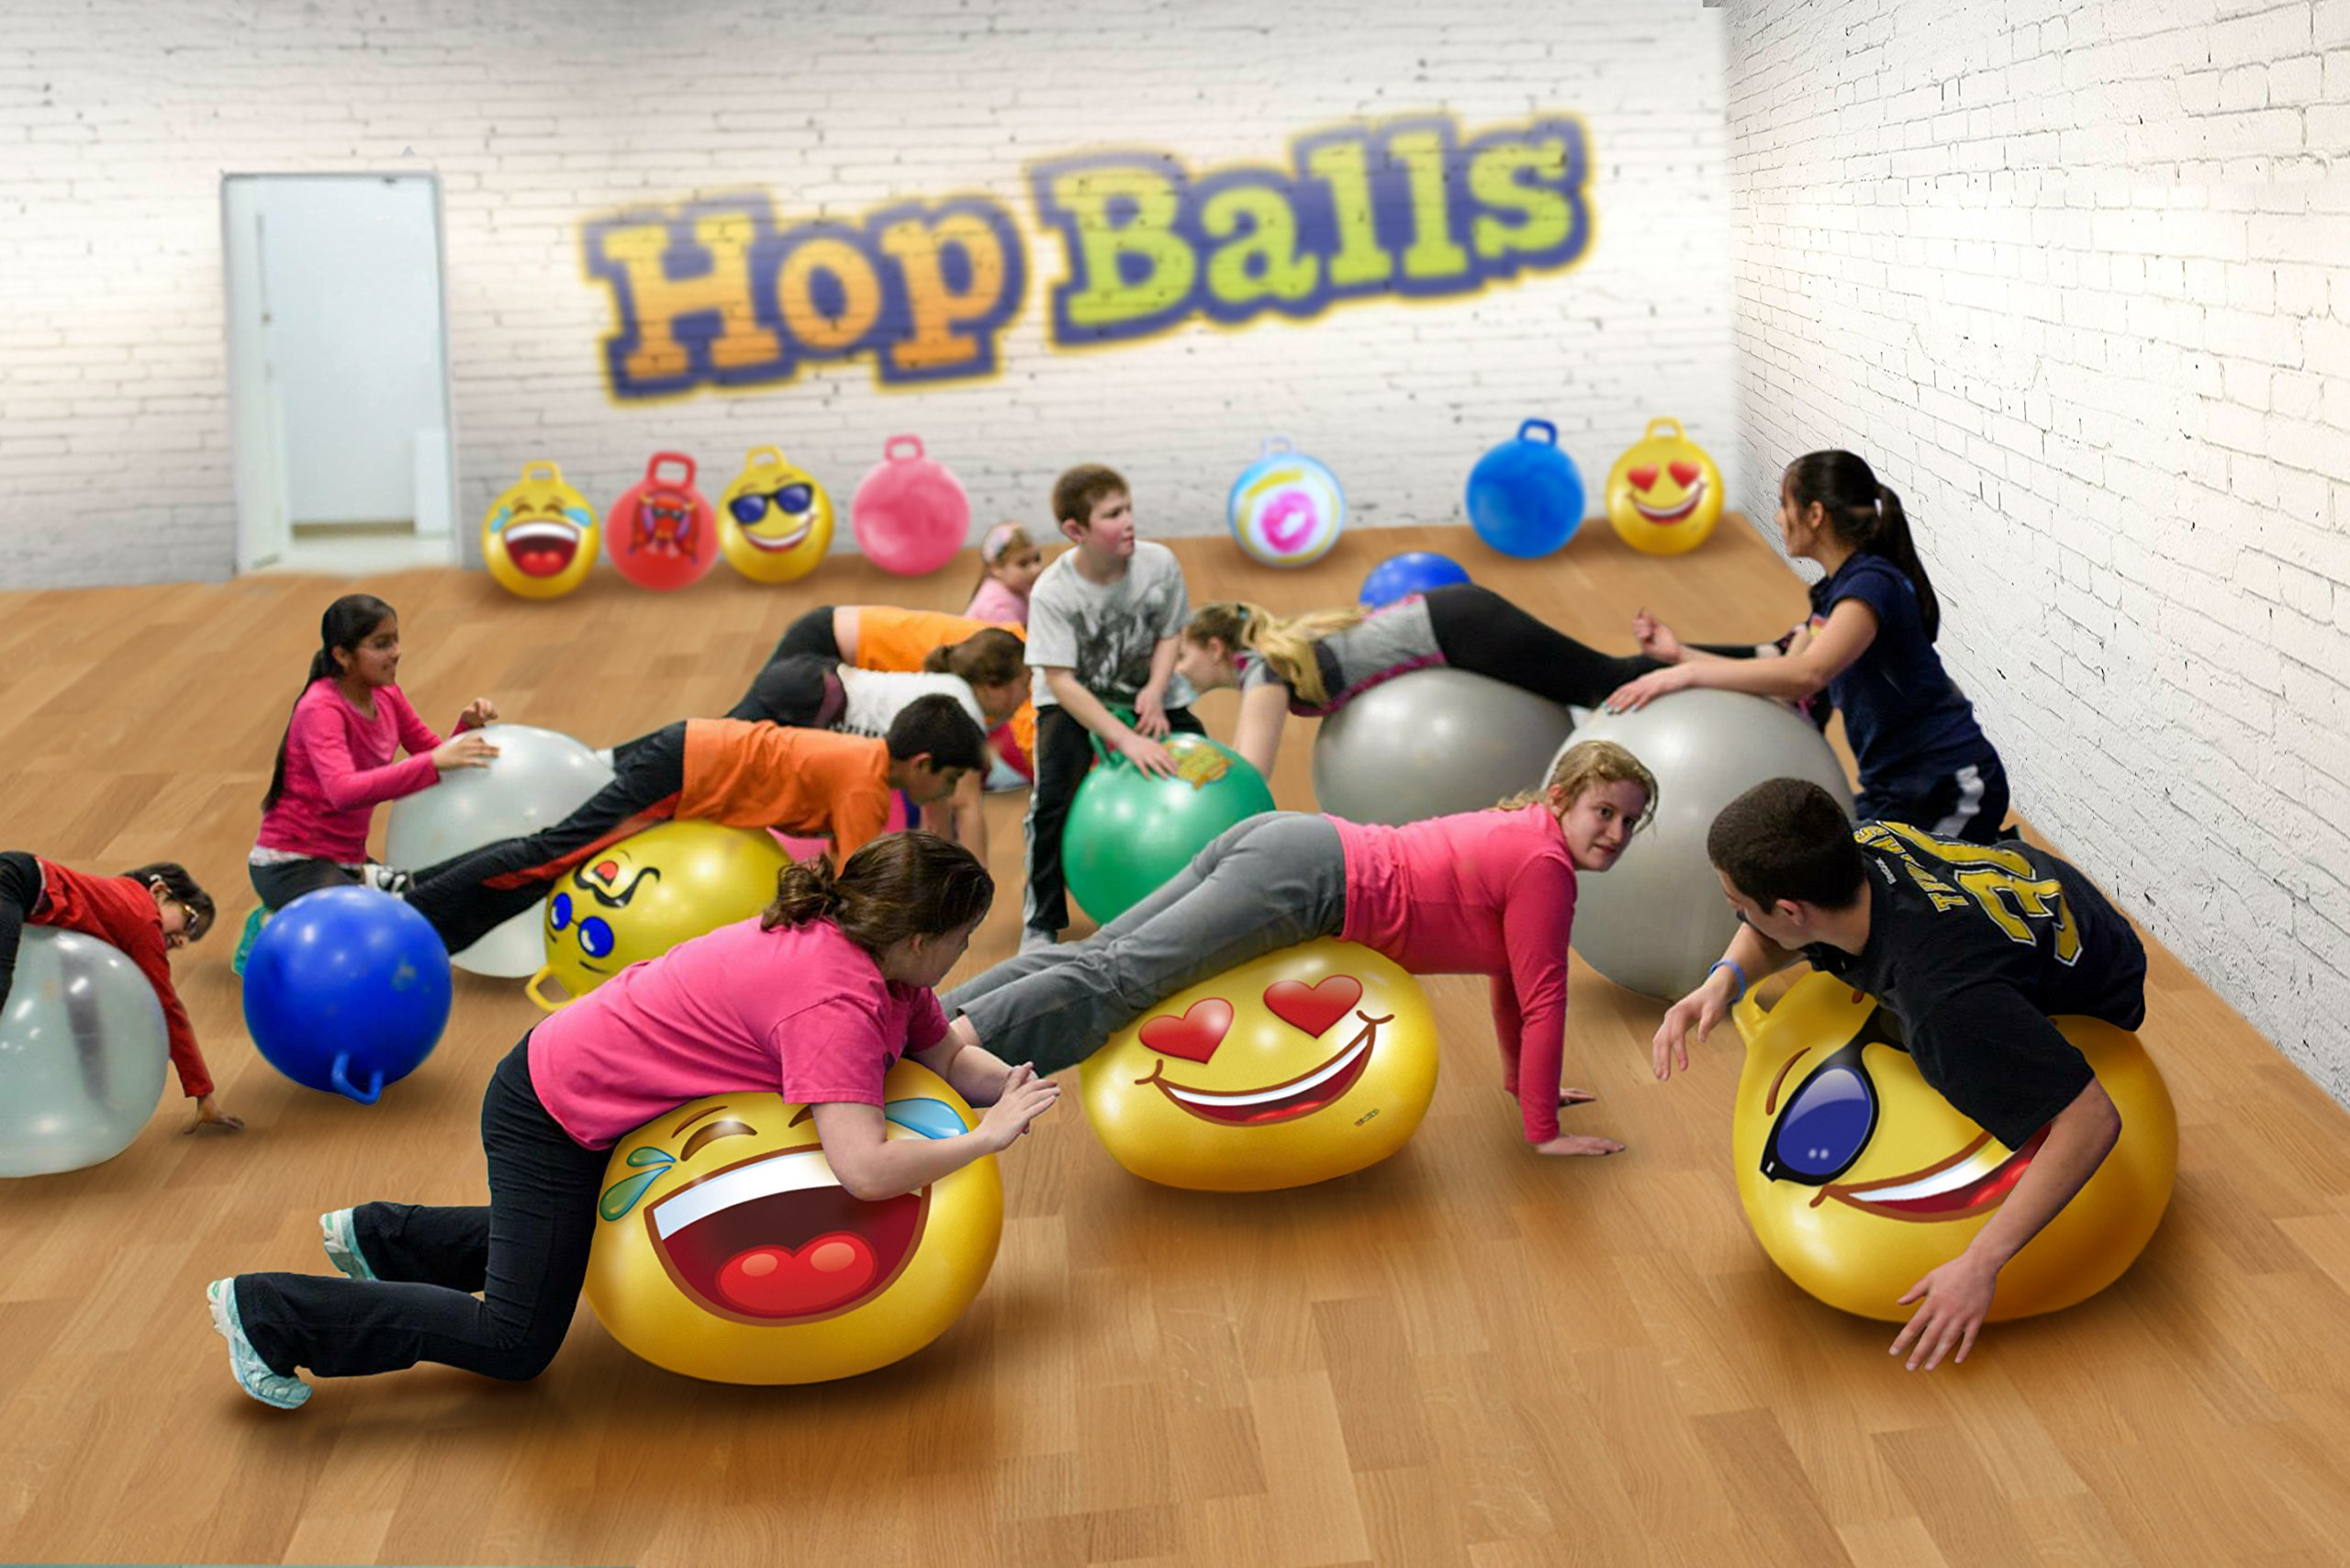 WALIKI TOYS Hopper Ball For Kids Ages 3-6 (Hippity Hop Ball, Hopping Ball, Bouncy Ball With Handles, Sit & Bounce, Kangaroo Bouncer, Jumping Ball, 18 Inches, Emoji, Pump Included) by WALIKI (Image #3)